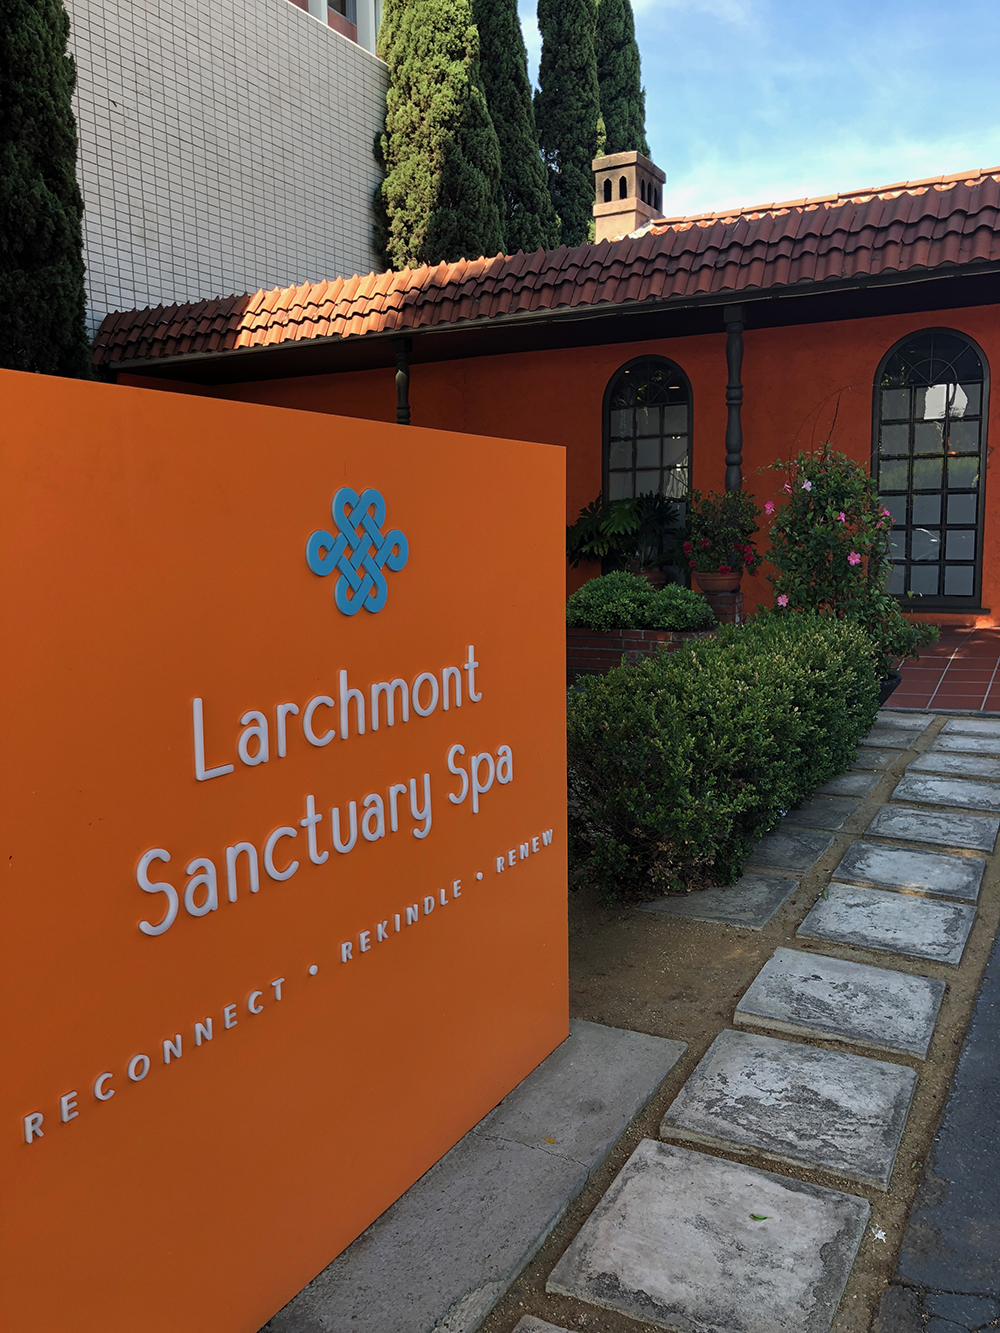 The award-winning Larchmont Sanctuary Spa is located in the historic Larchmont Village neighborhood of Los Angeles, California.